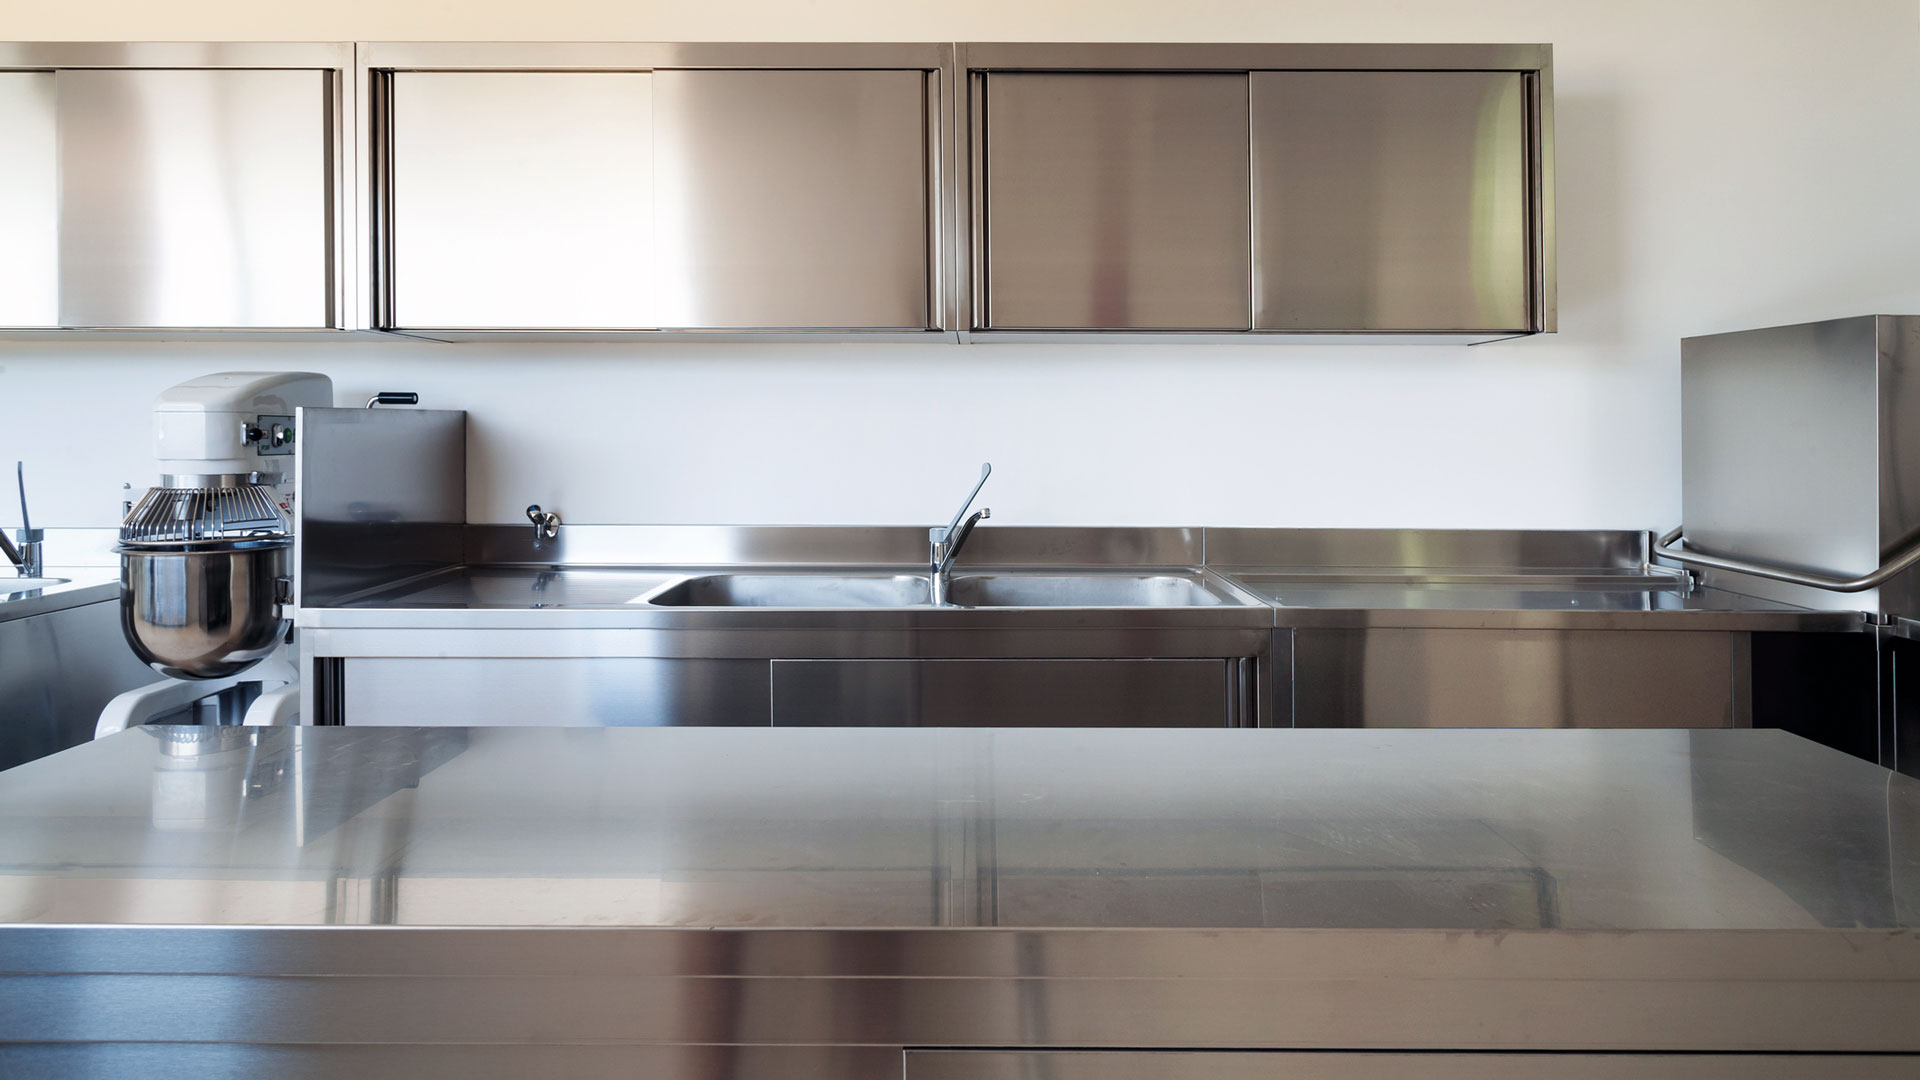 Glass Countertops Calgary All Products Another Dimension Stainless Steel Calgary